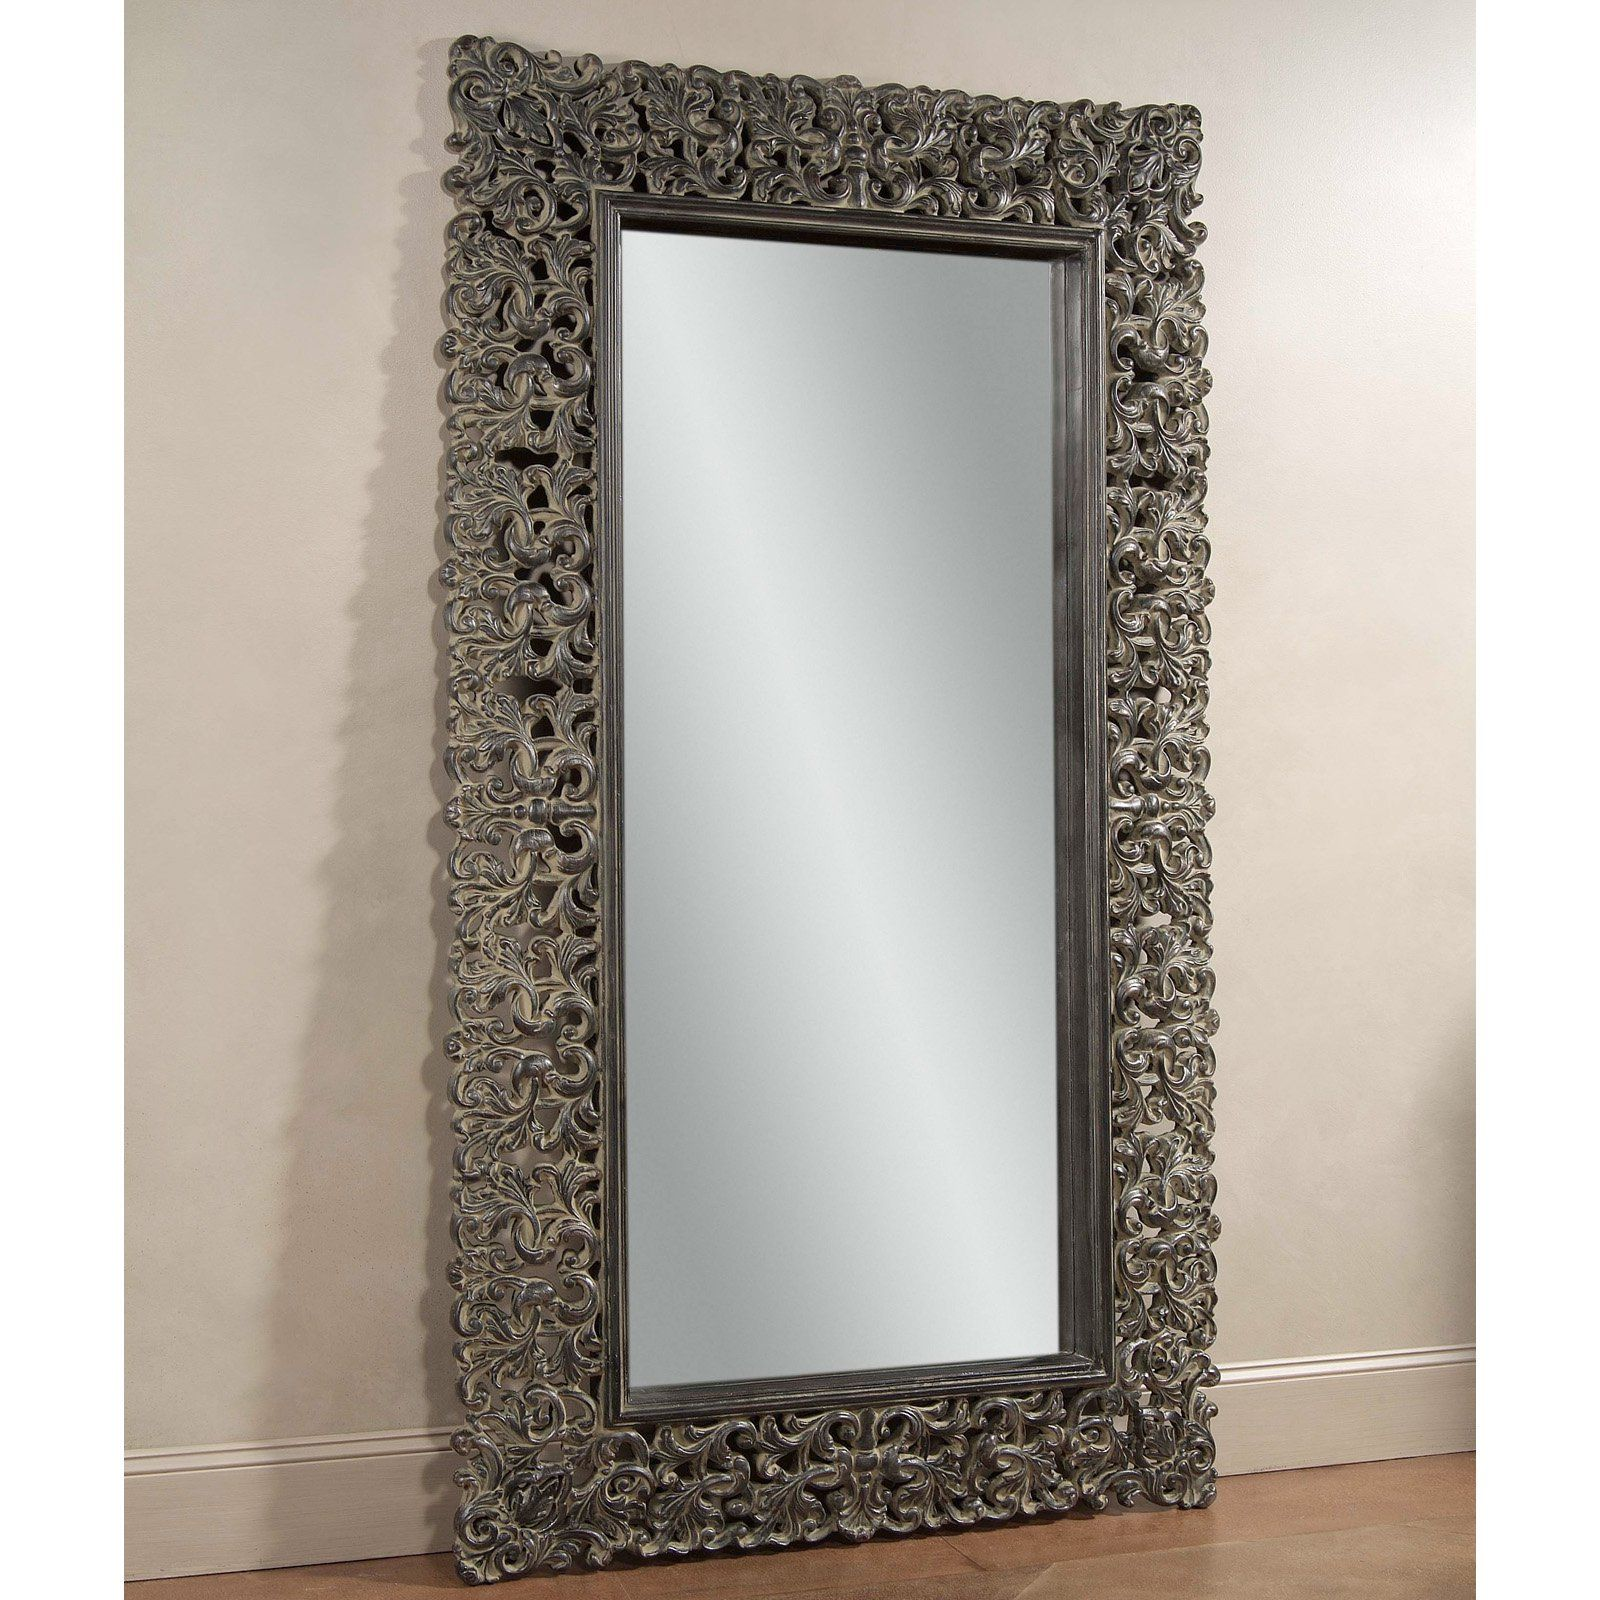 Maltese Leaner Mirror 48w X 87h In Item Hn Bam252 from High